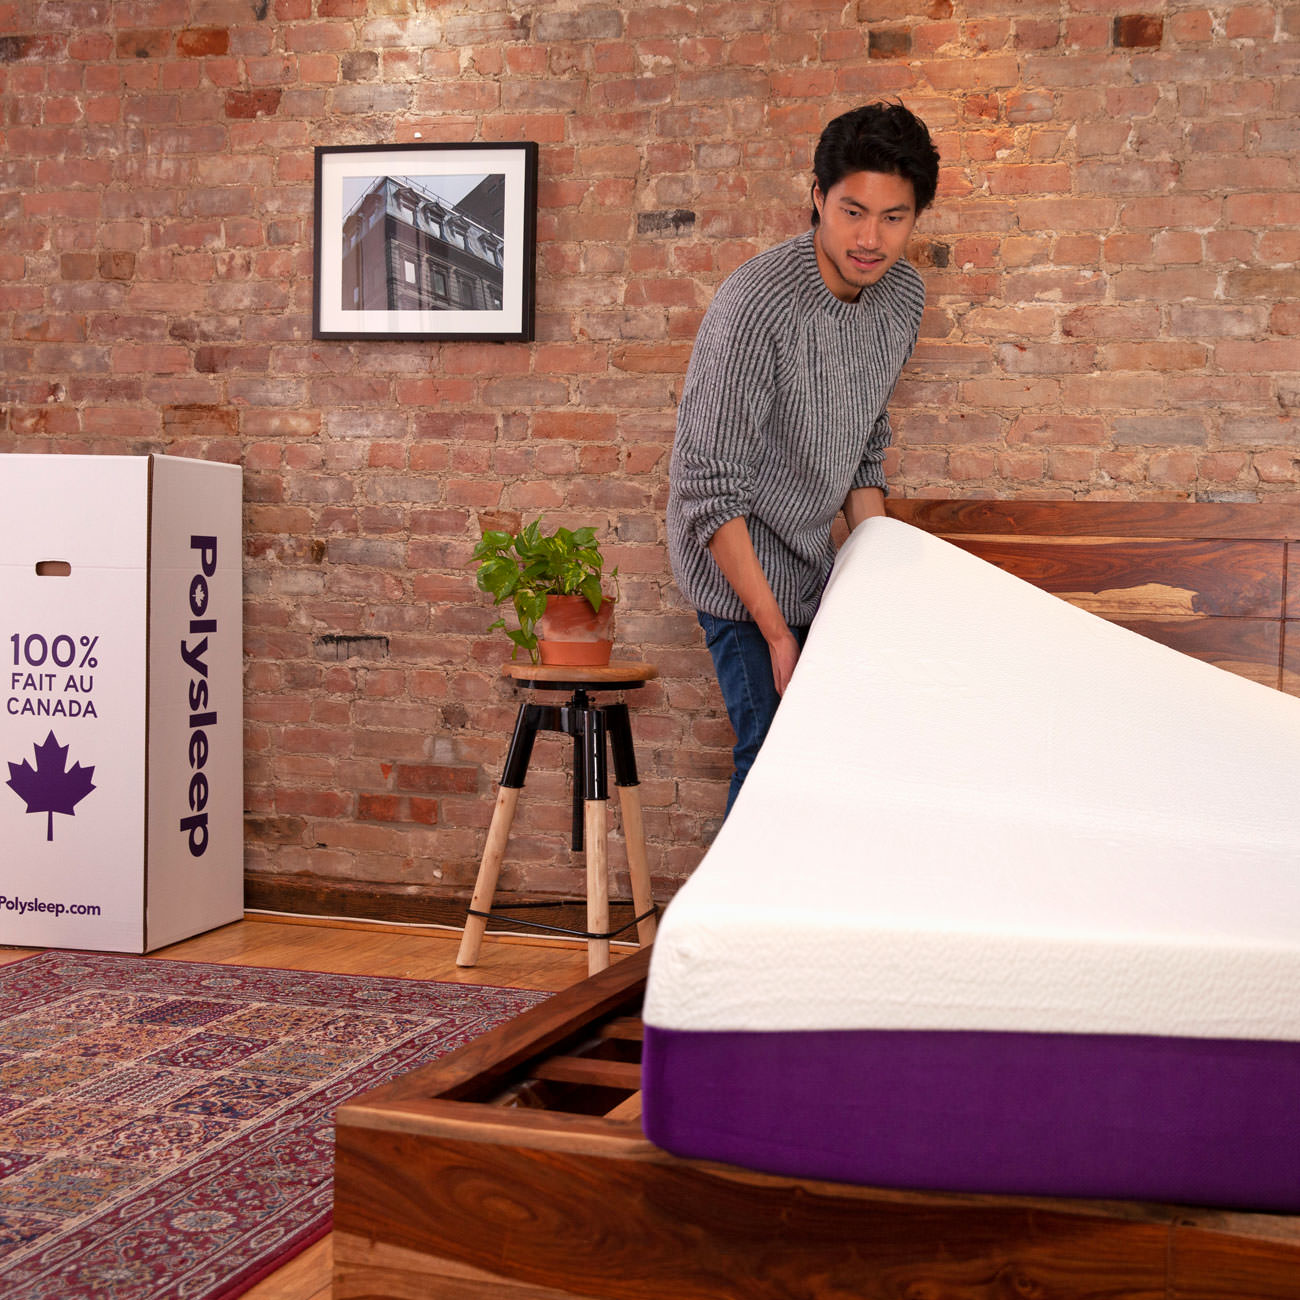 A customer is positioning his new Polysleep mattress on his bed